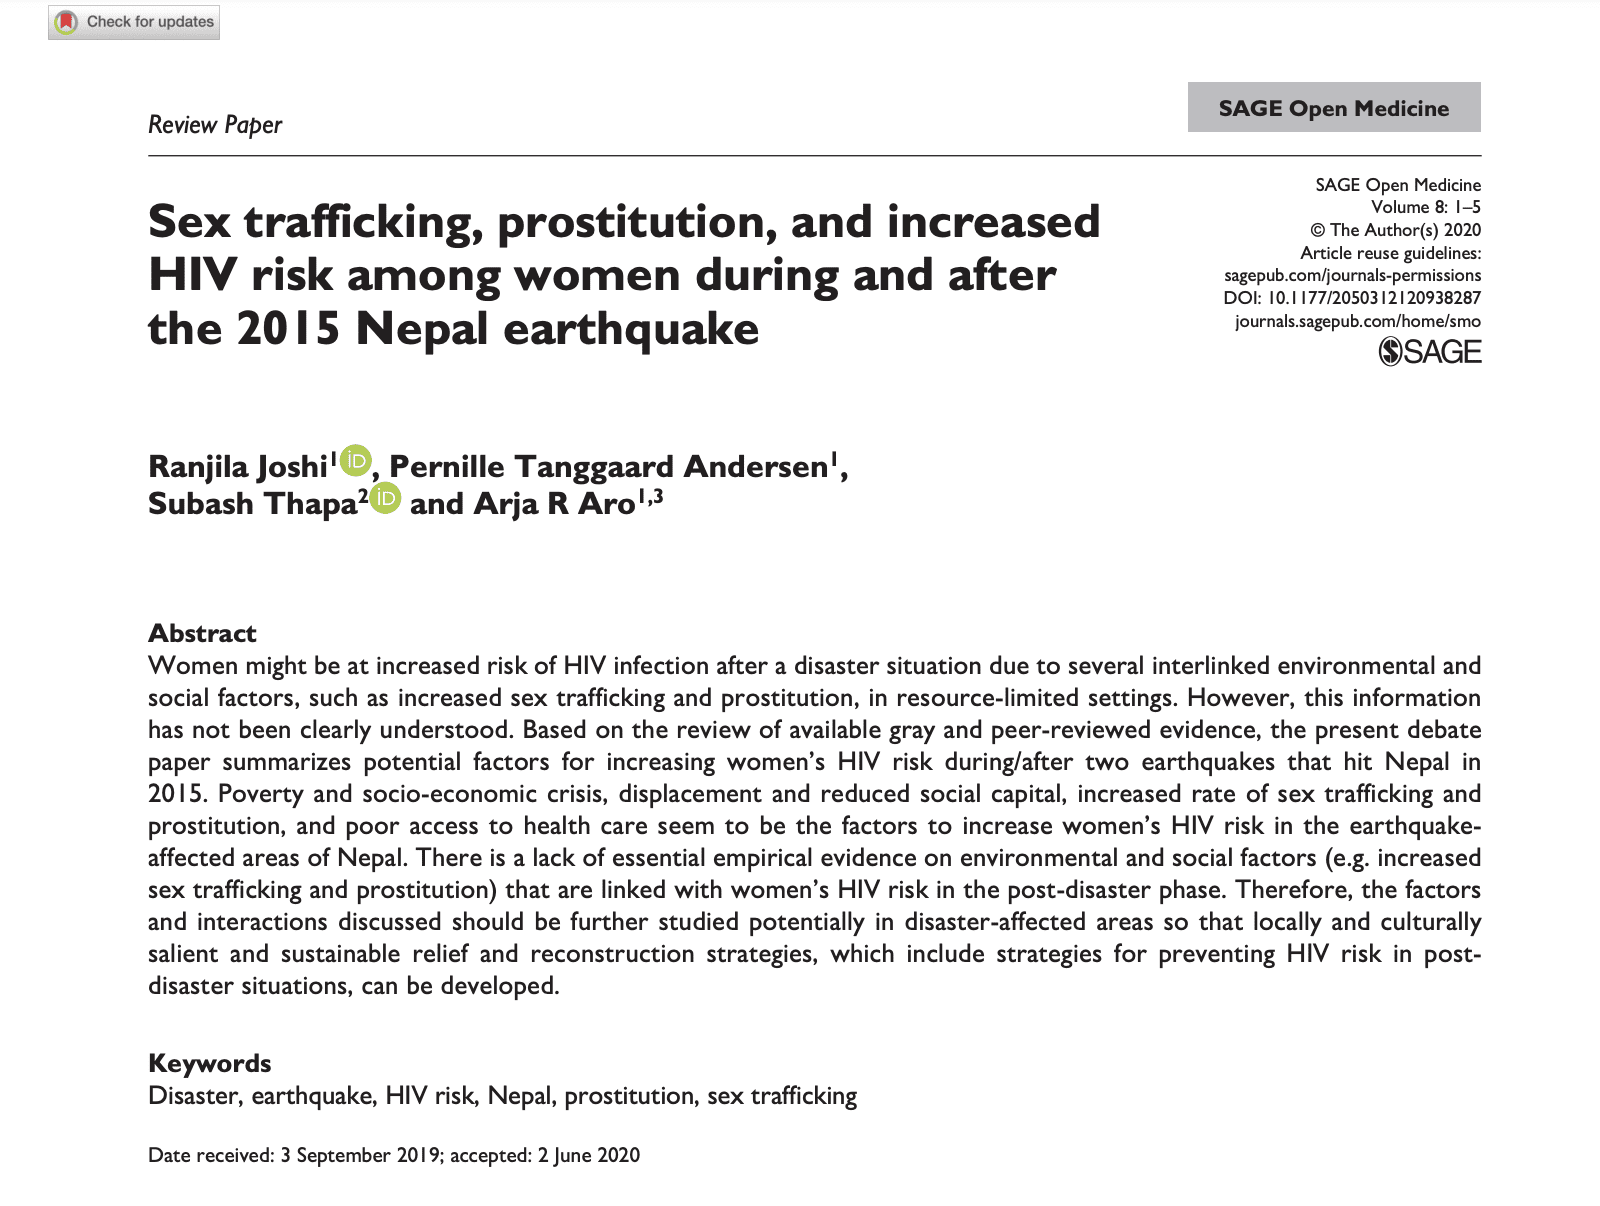 Sex trafficking, prostitution, and increased HIV risk among women during and after the 2015 Nepal earthquake